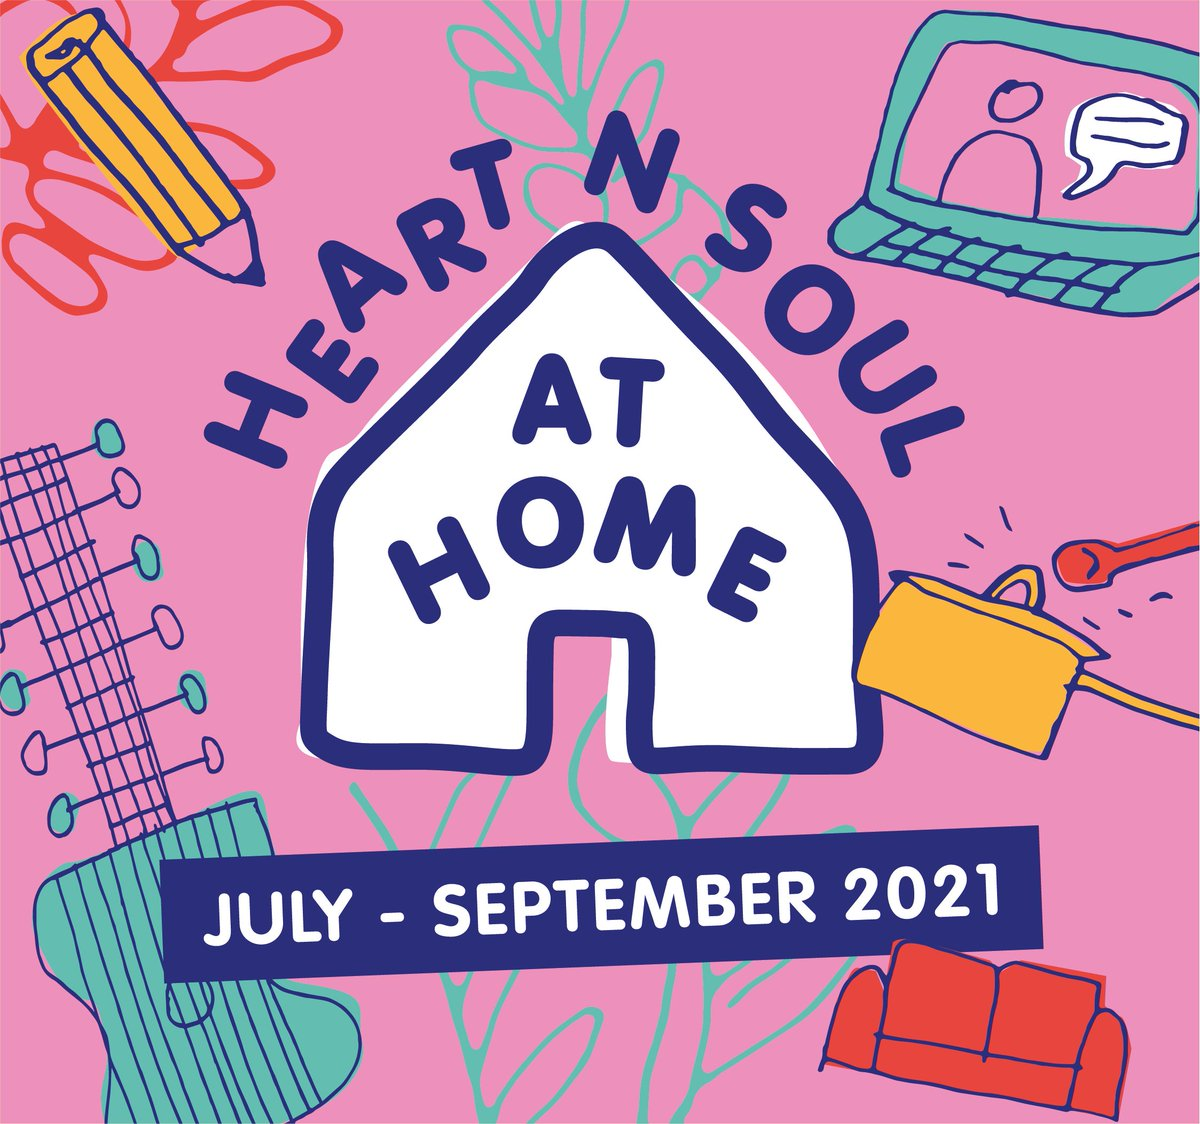 Looking for something to do over the summer? 🌞 Heart n Soul at Home is our FREE weekday creative sessions online, open to everyone! Find out more info here ℹ️https://t.co/lOUF9vHrvE https://t.co/7wVnEv6Ge7